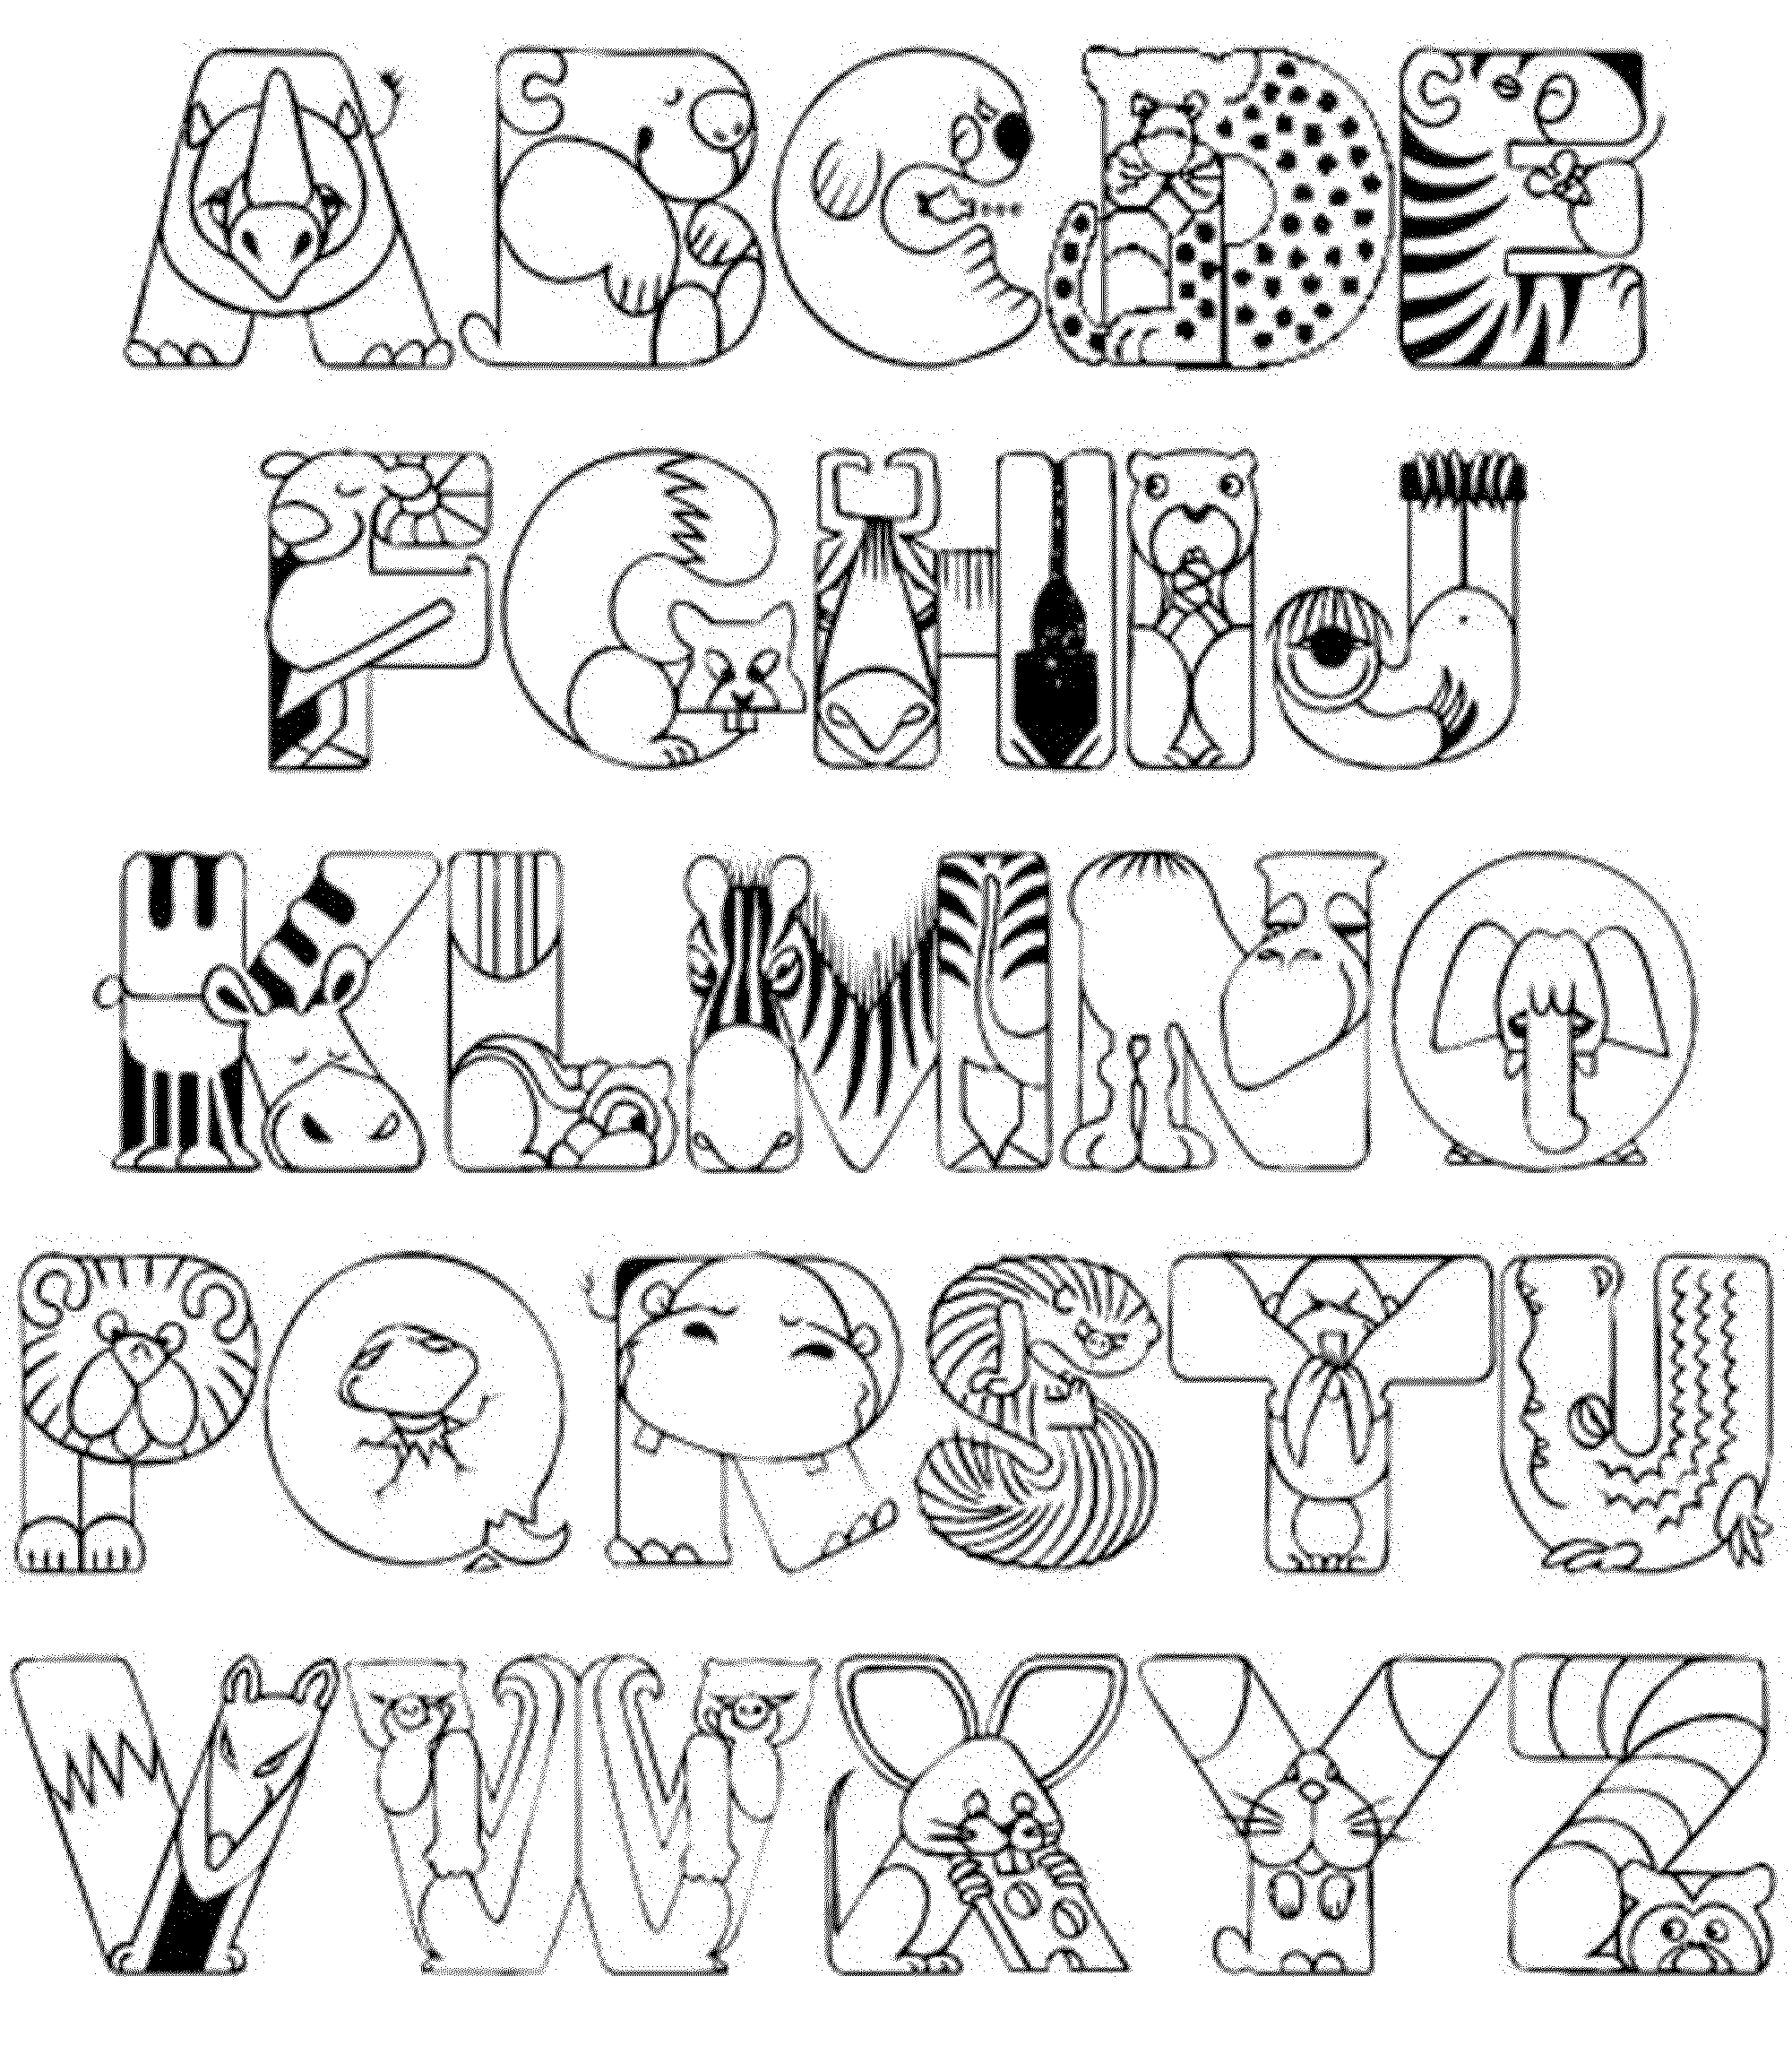 Abc Coloring Pages Free Printable At Getdrawings Com Free